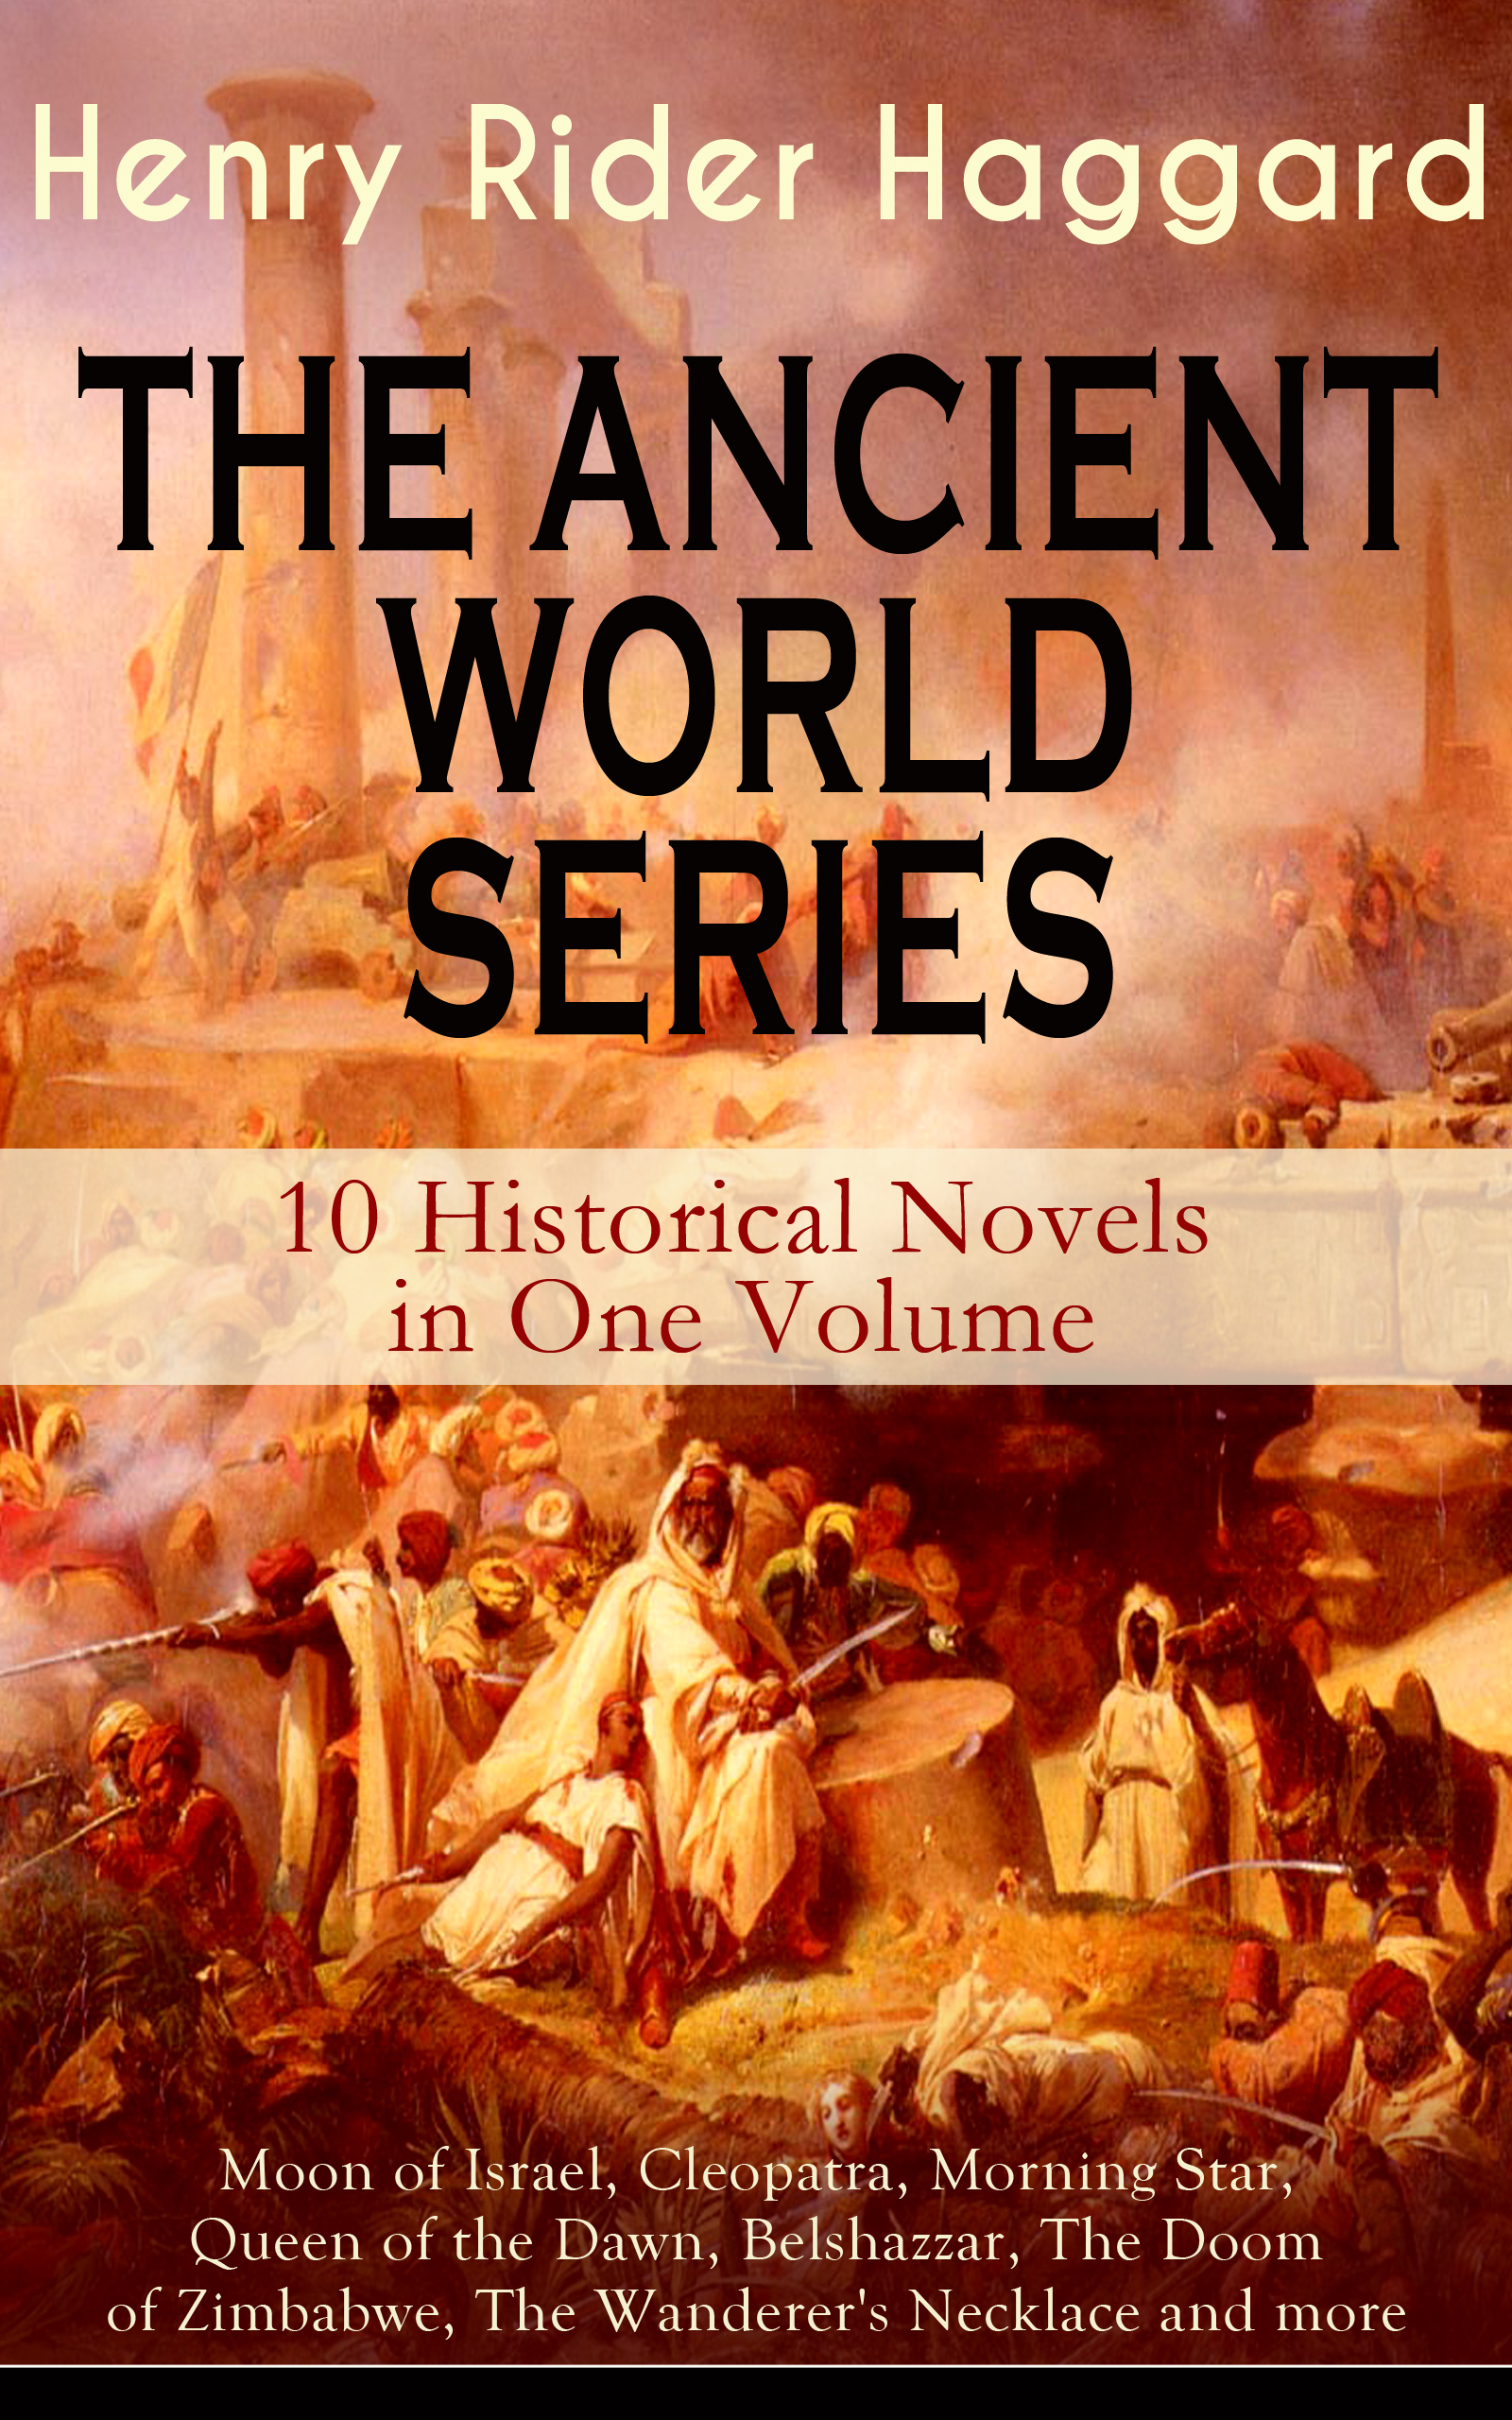 цена Генри Райдер Хаггард THE ANCIENT WORLD SERIES - 10 Historical Novels in One Volume: Moon of Israel, Cleopatra, Morning Star, Queen of the Dawn, Belshazzar, The Doom of Zimbabwe, The Wanderer's Necklace and more онлайн в 2017 году